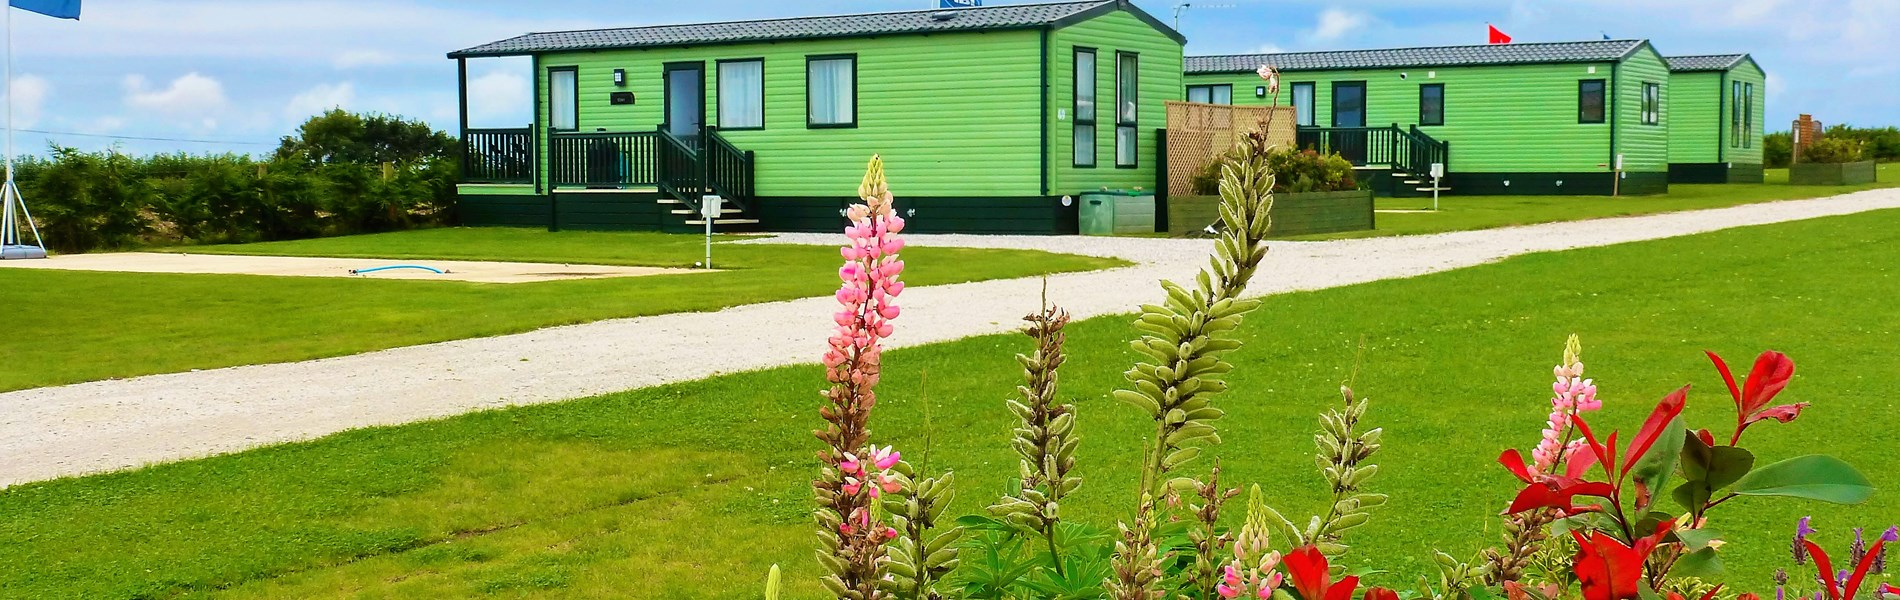 New Static Caravans and Holiday Homes in a rural location at Trelay Holiday Park, Looe, Cornwall.jpg